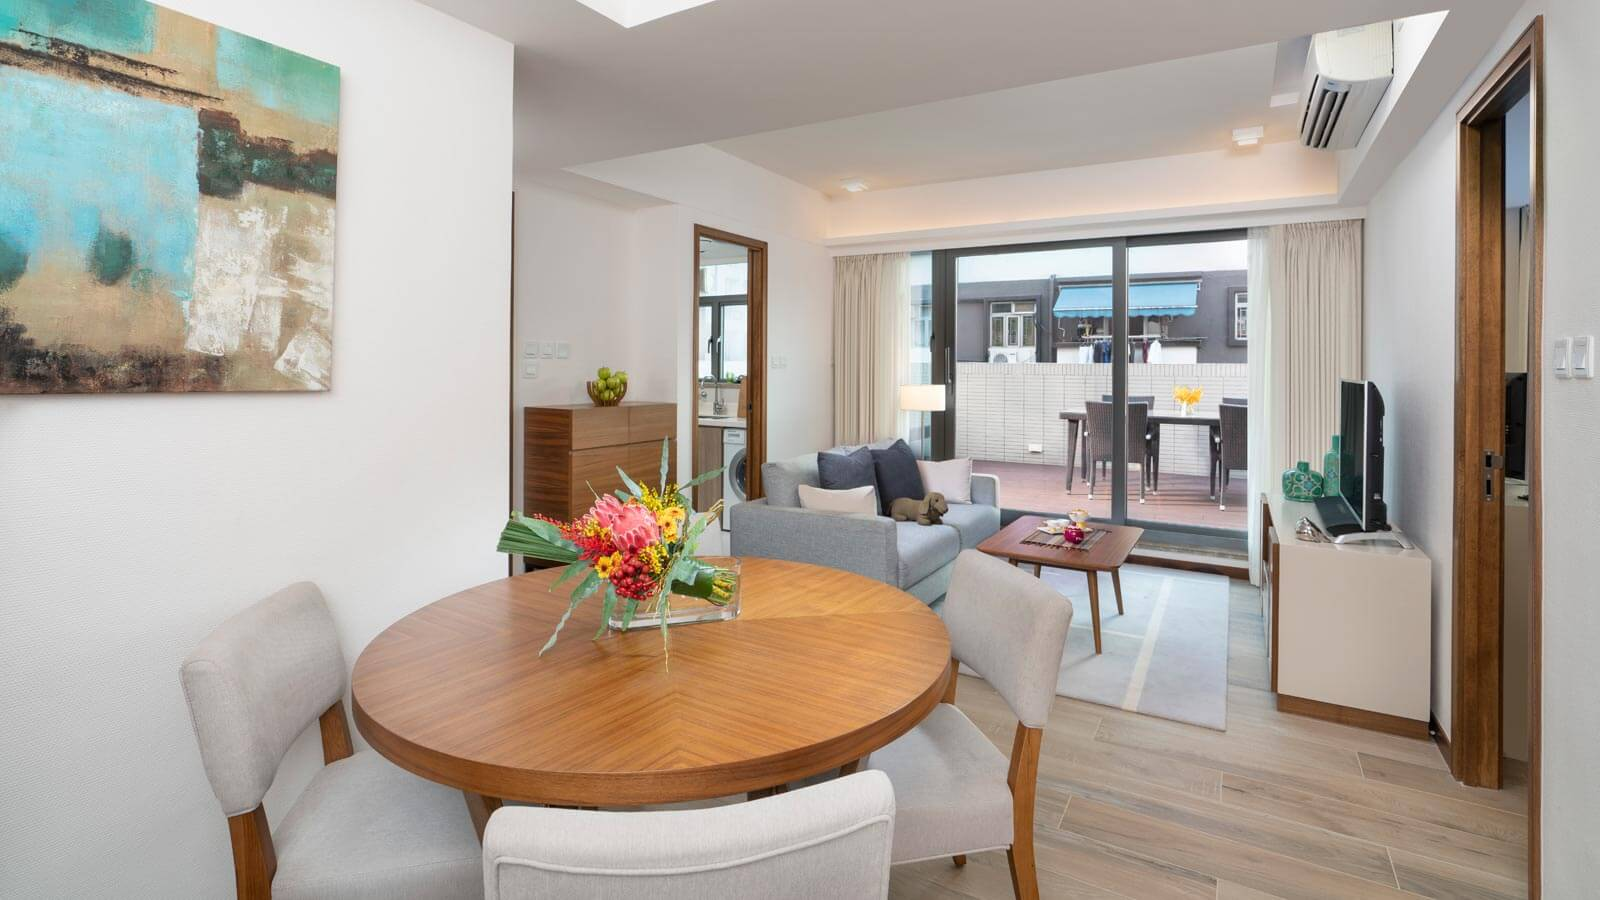 Two Bedroom with Terrace - Living Room and Dining Area